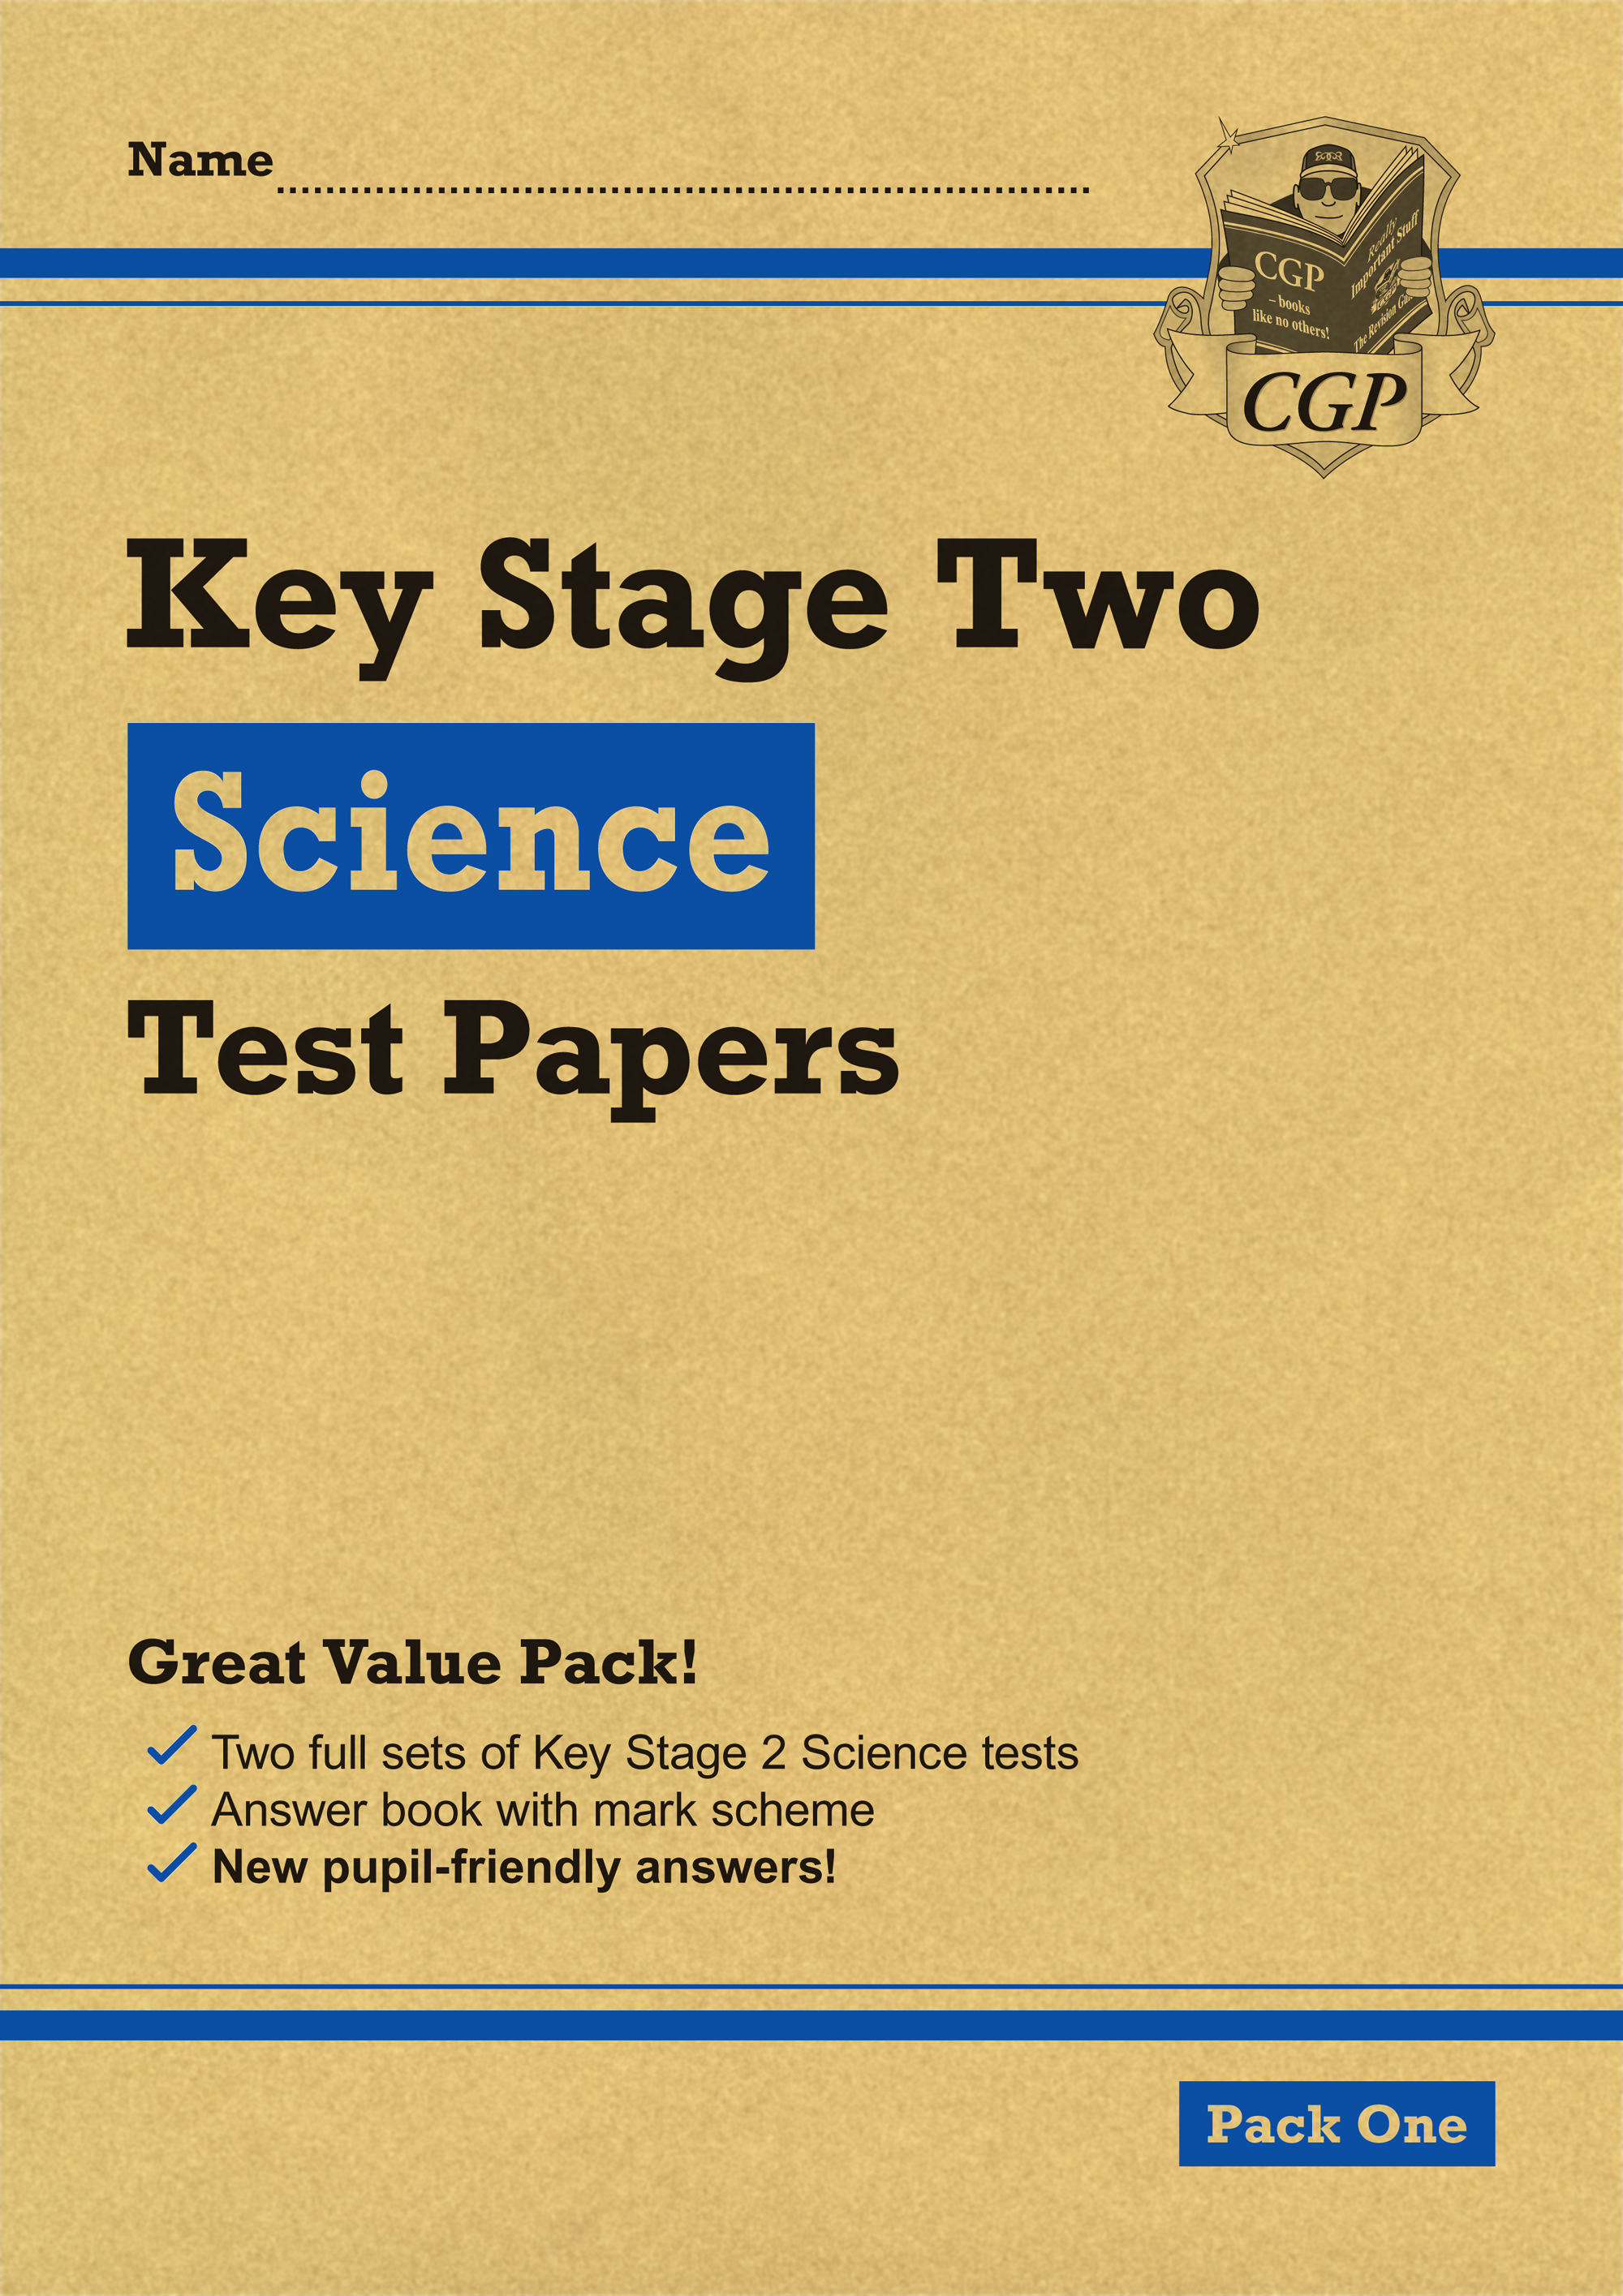 SHEP23 - New KS2 Science Tests: Pack 1